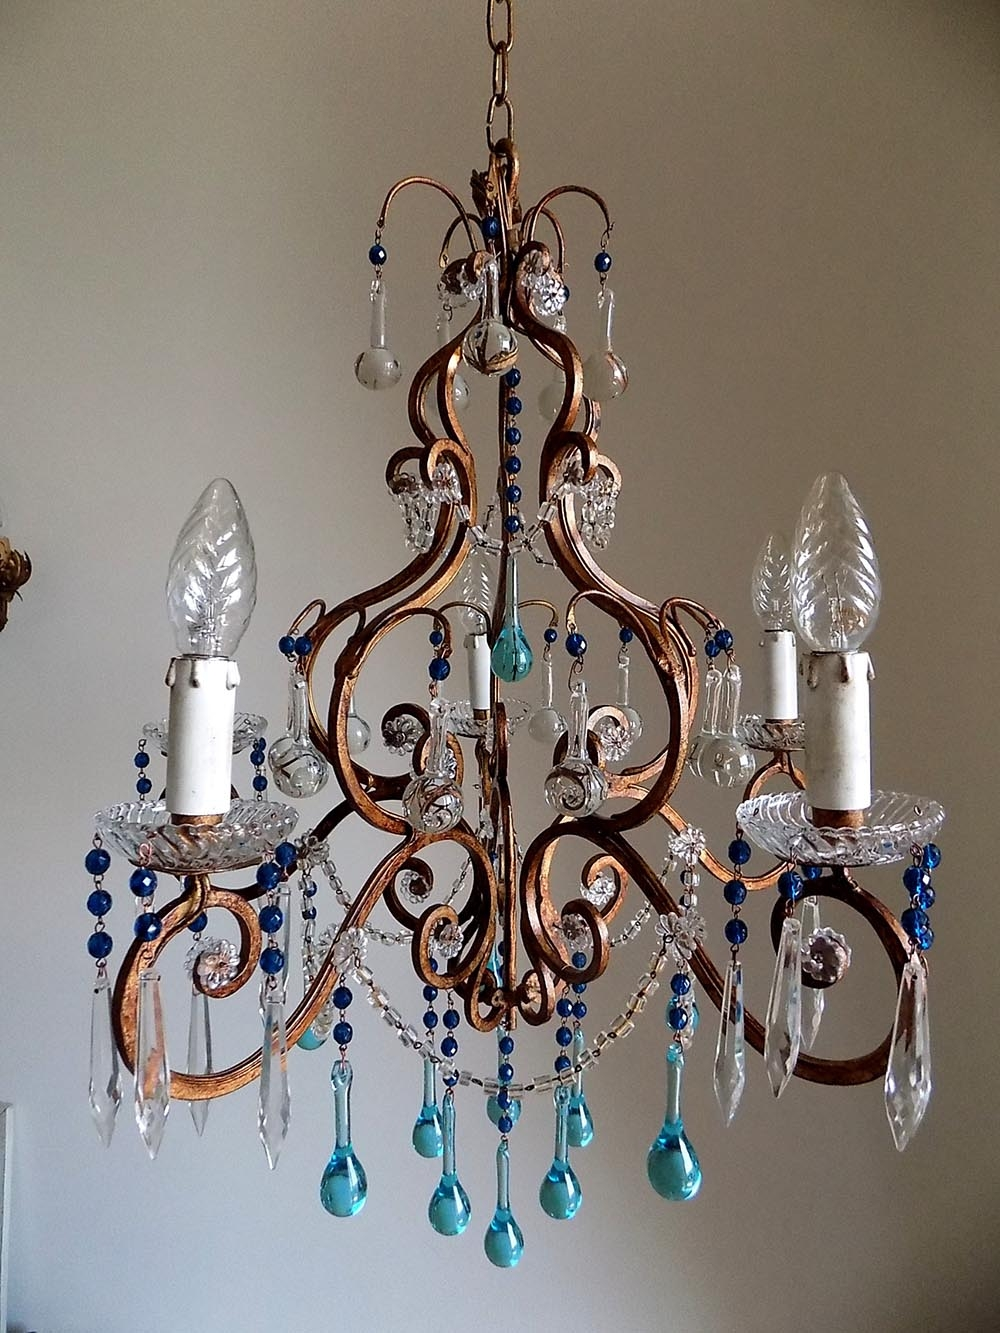 Chandelier Amusing Wrought Iron Crystal Chandelier Enchanting Pertaining To Large Turquoise Chandeliers (View 15 of 25)